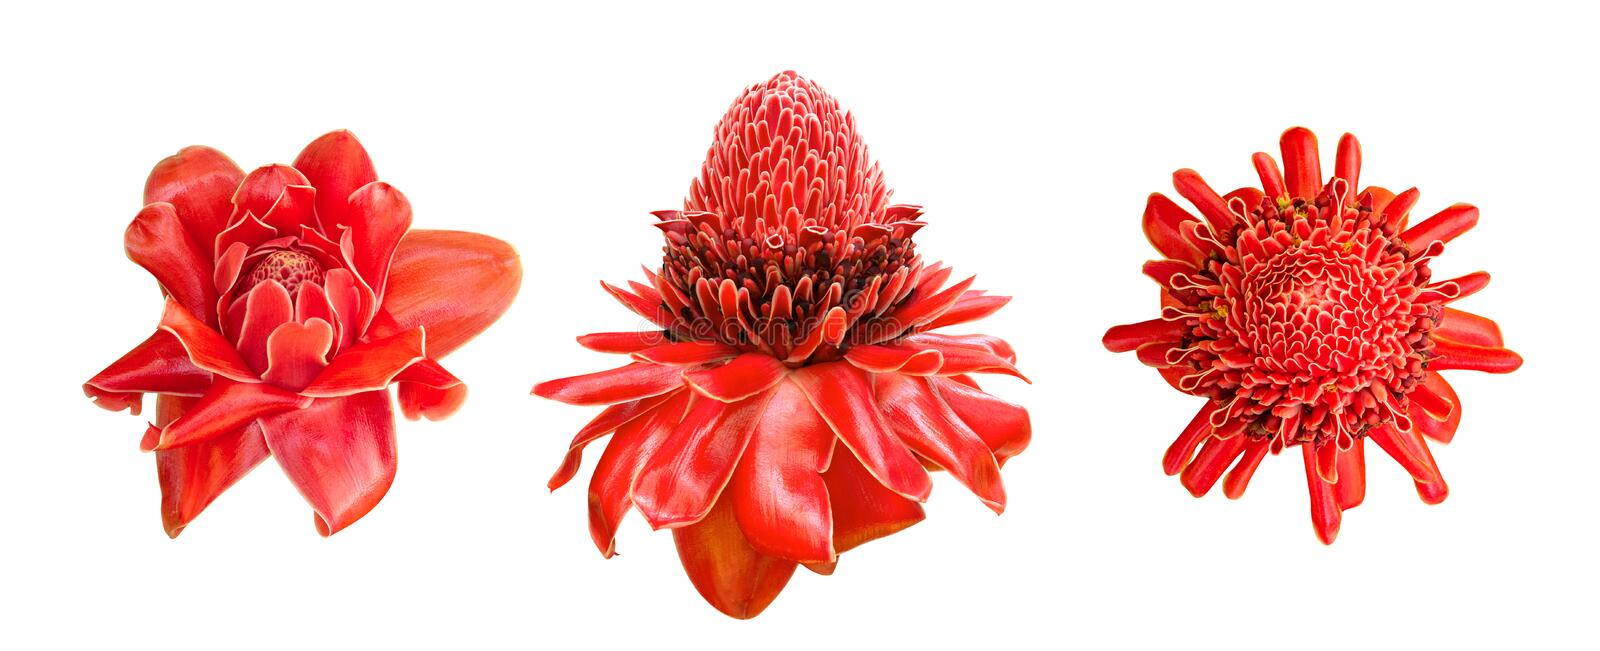 Red ginger lily flower Etlingera elatior tropical plant set isolated on white background, path royalty free stock photography